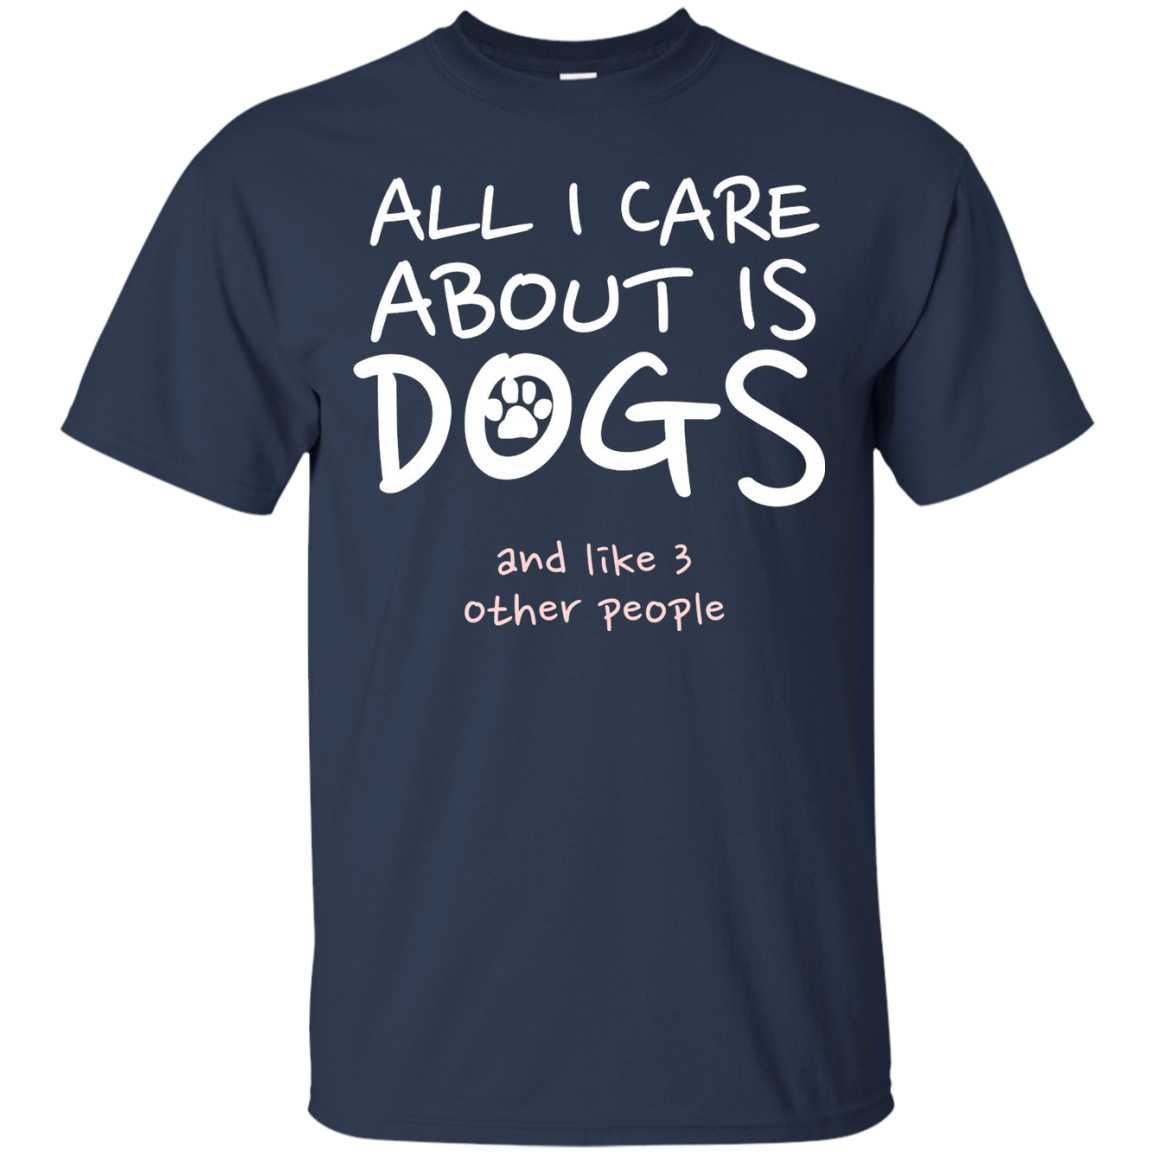 All i care about is dogs and like 3 other people t shirt